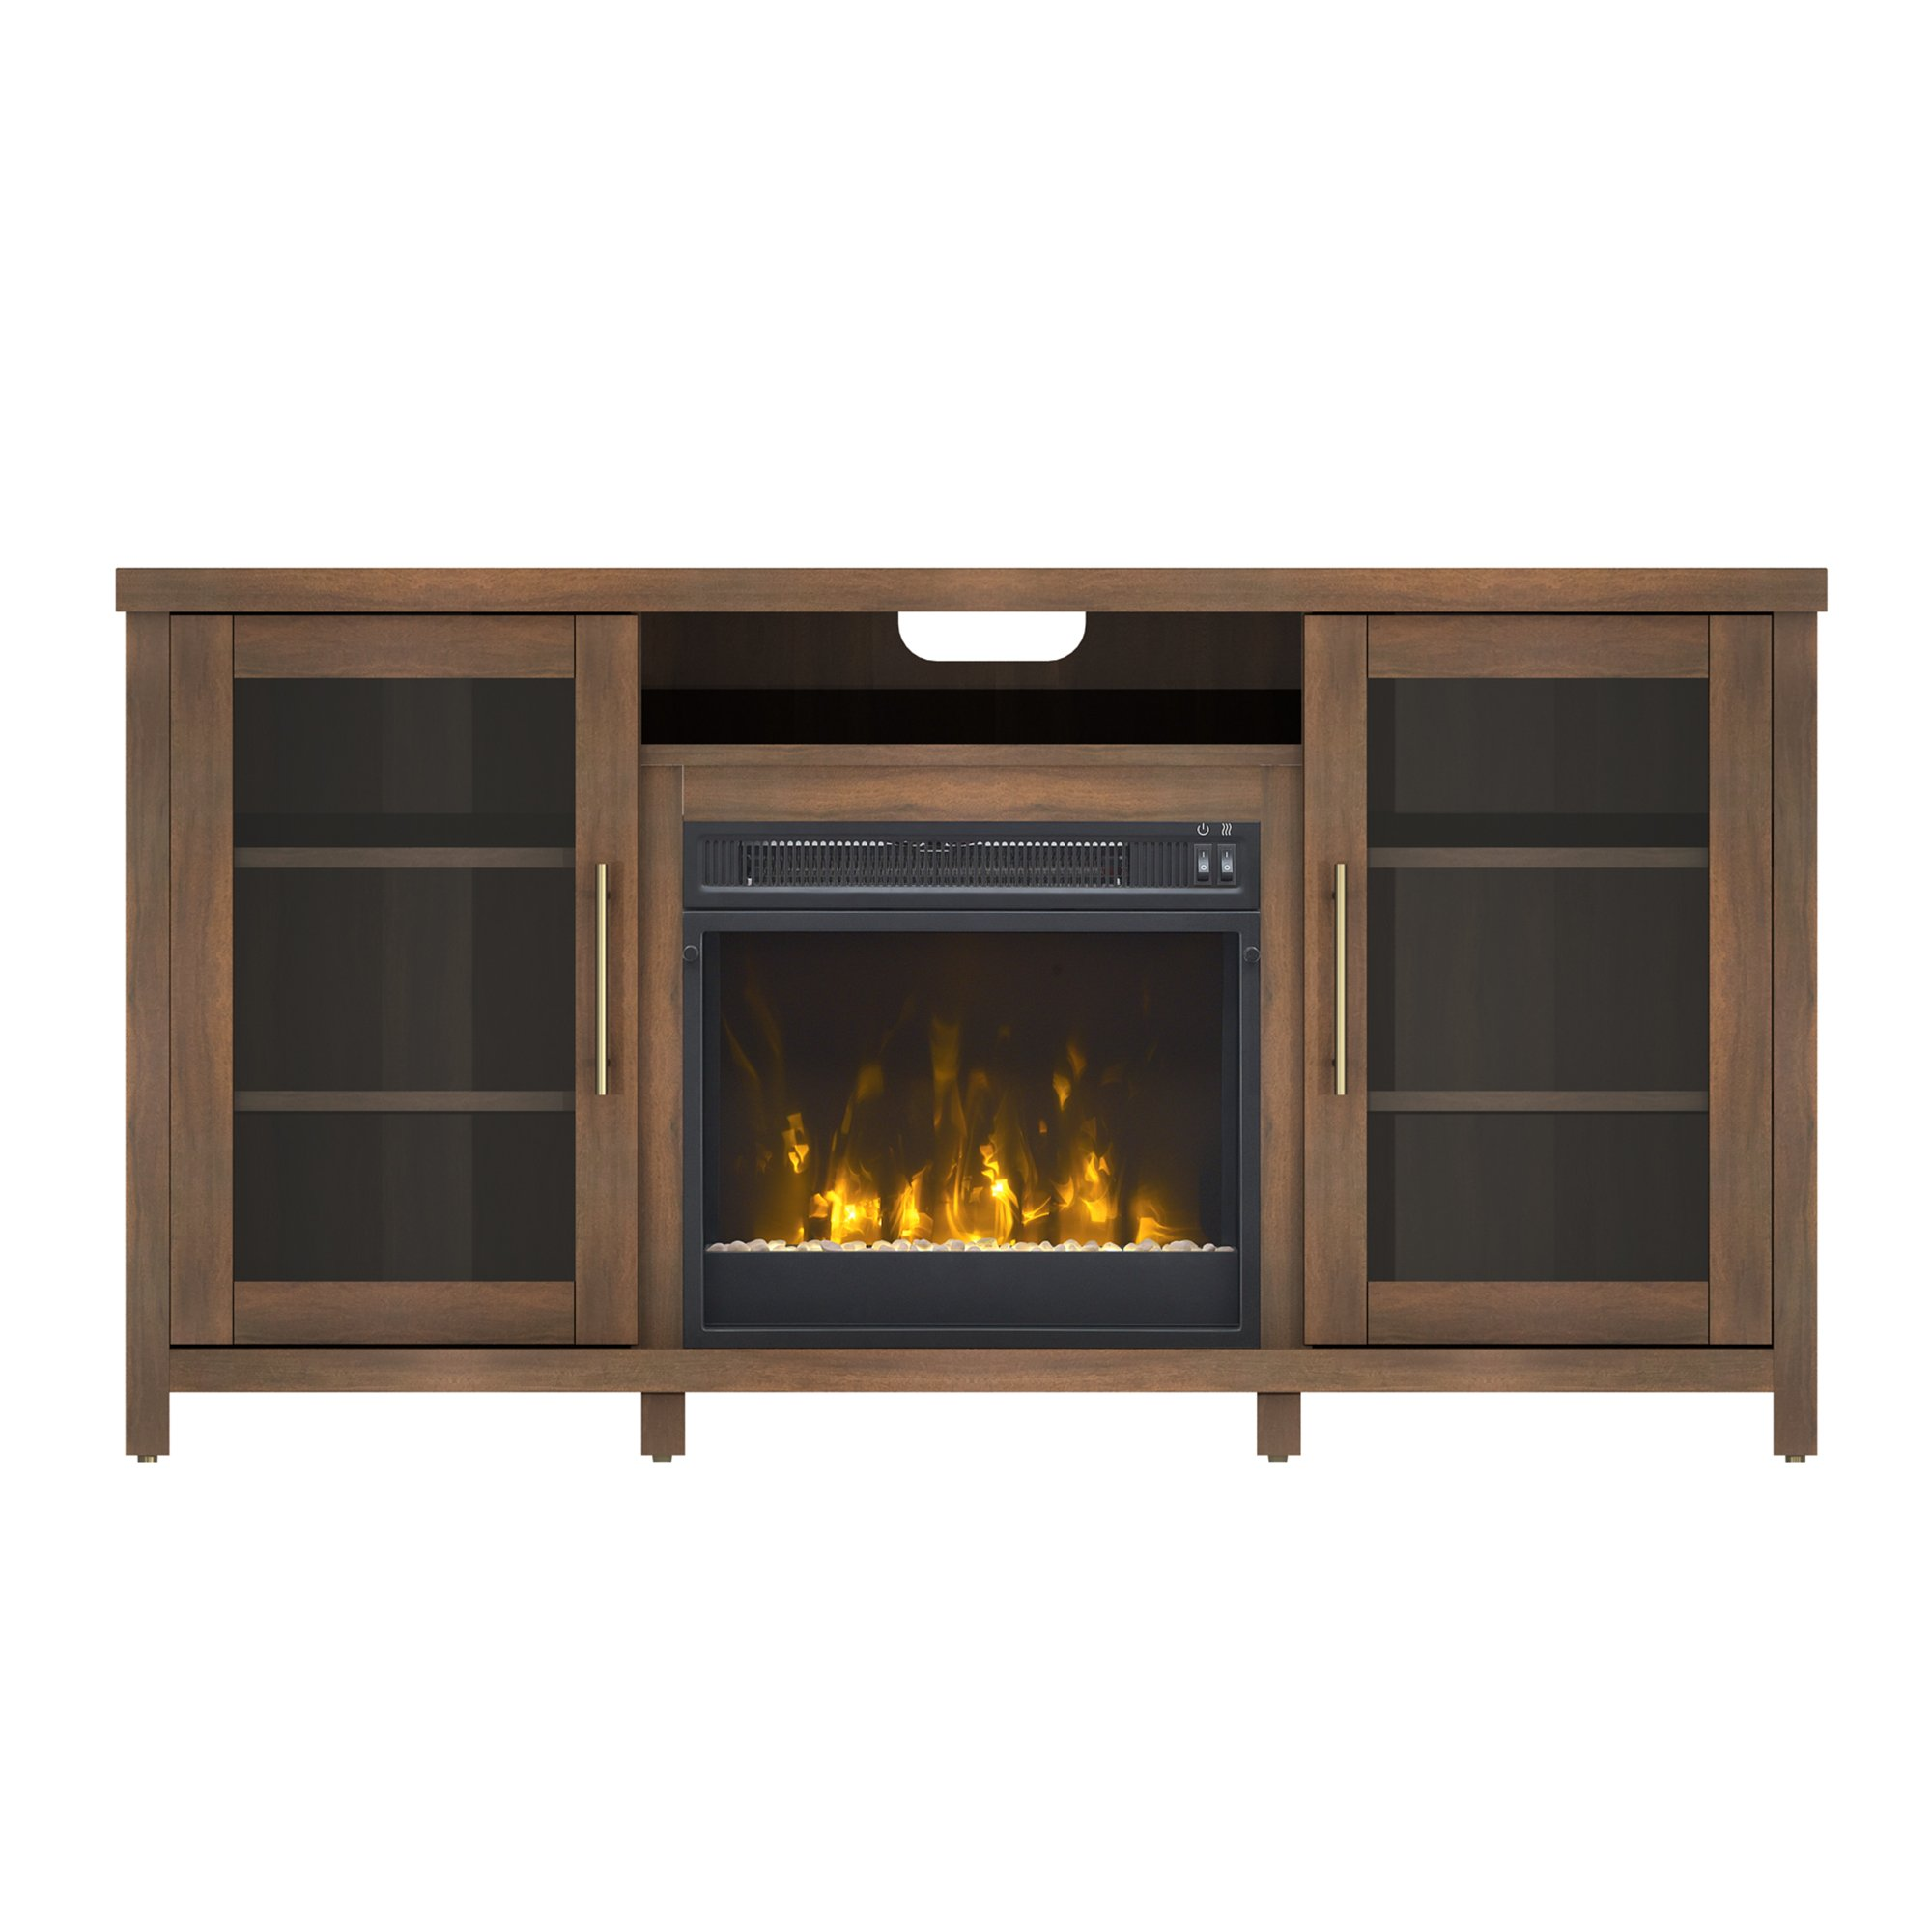 Pamari 208282 Milena Stand with Electric Fireplace for Tvs up to 60'' Stanton Birch Brown